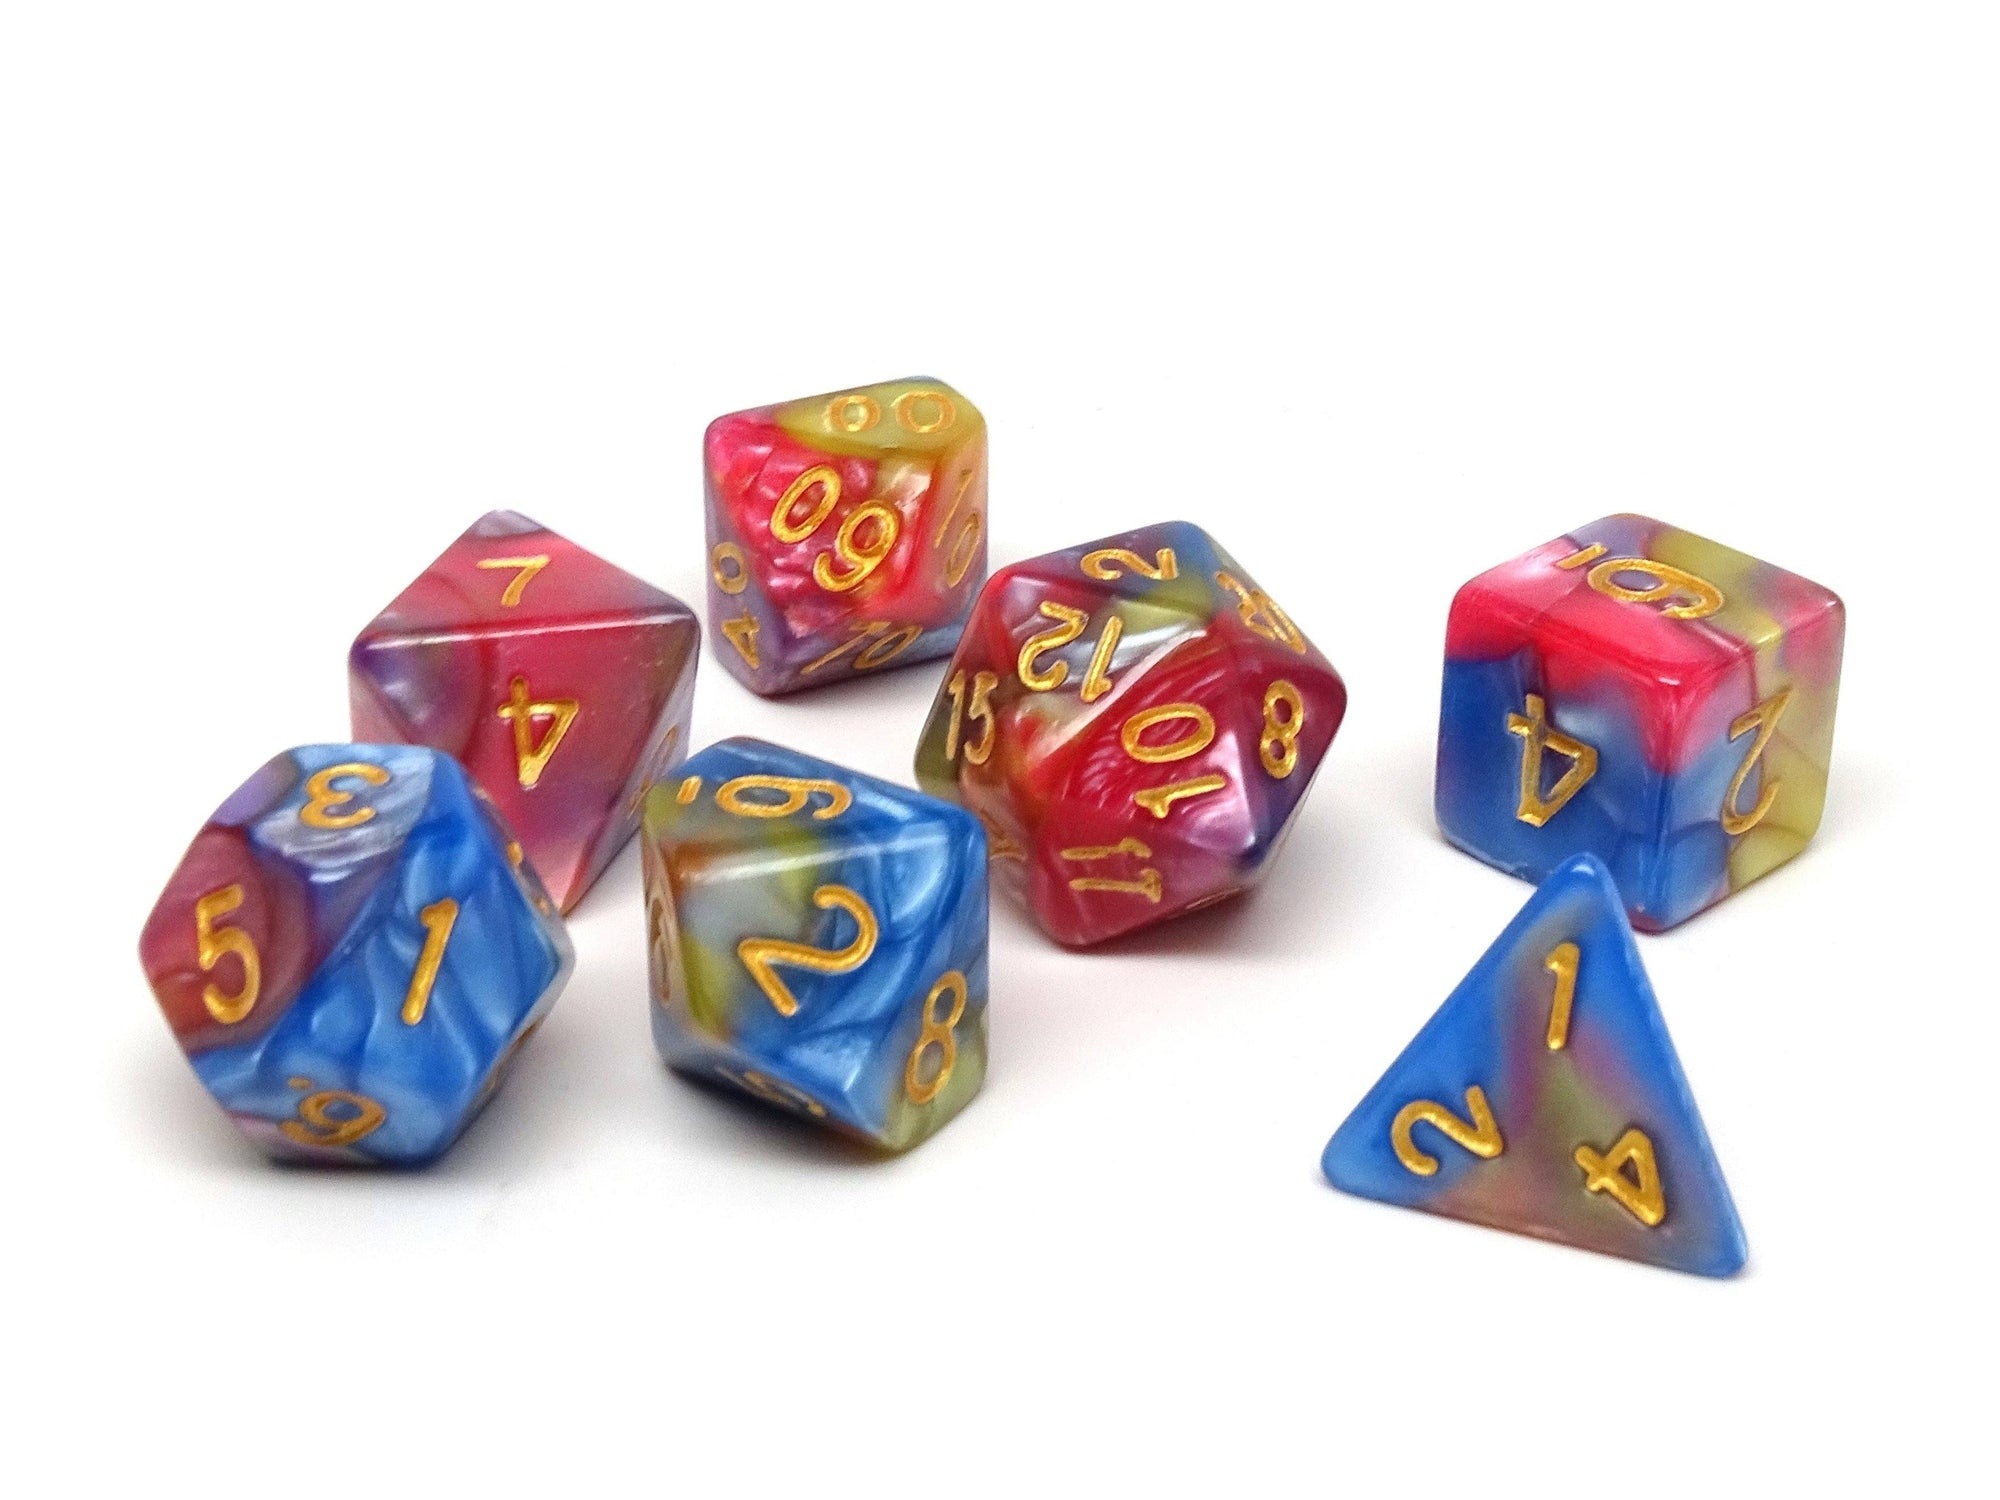 Blue, Pink, and Yellow Marble Dice Collection - 7 Piece Set